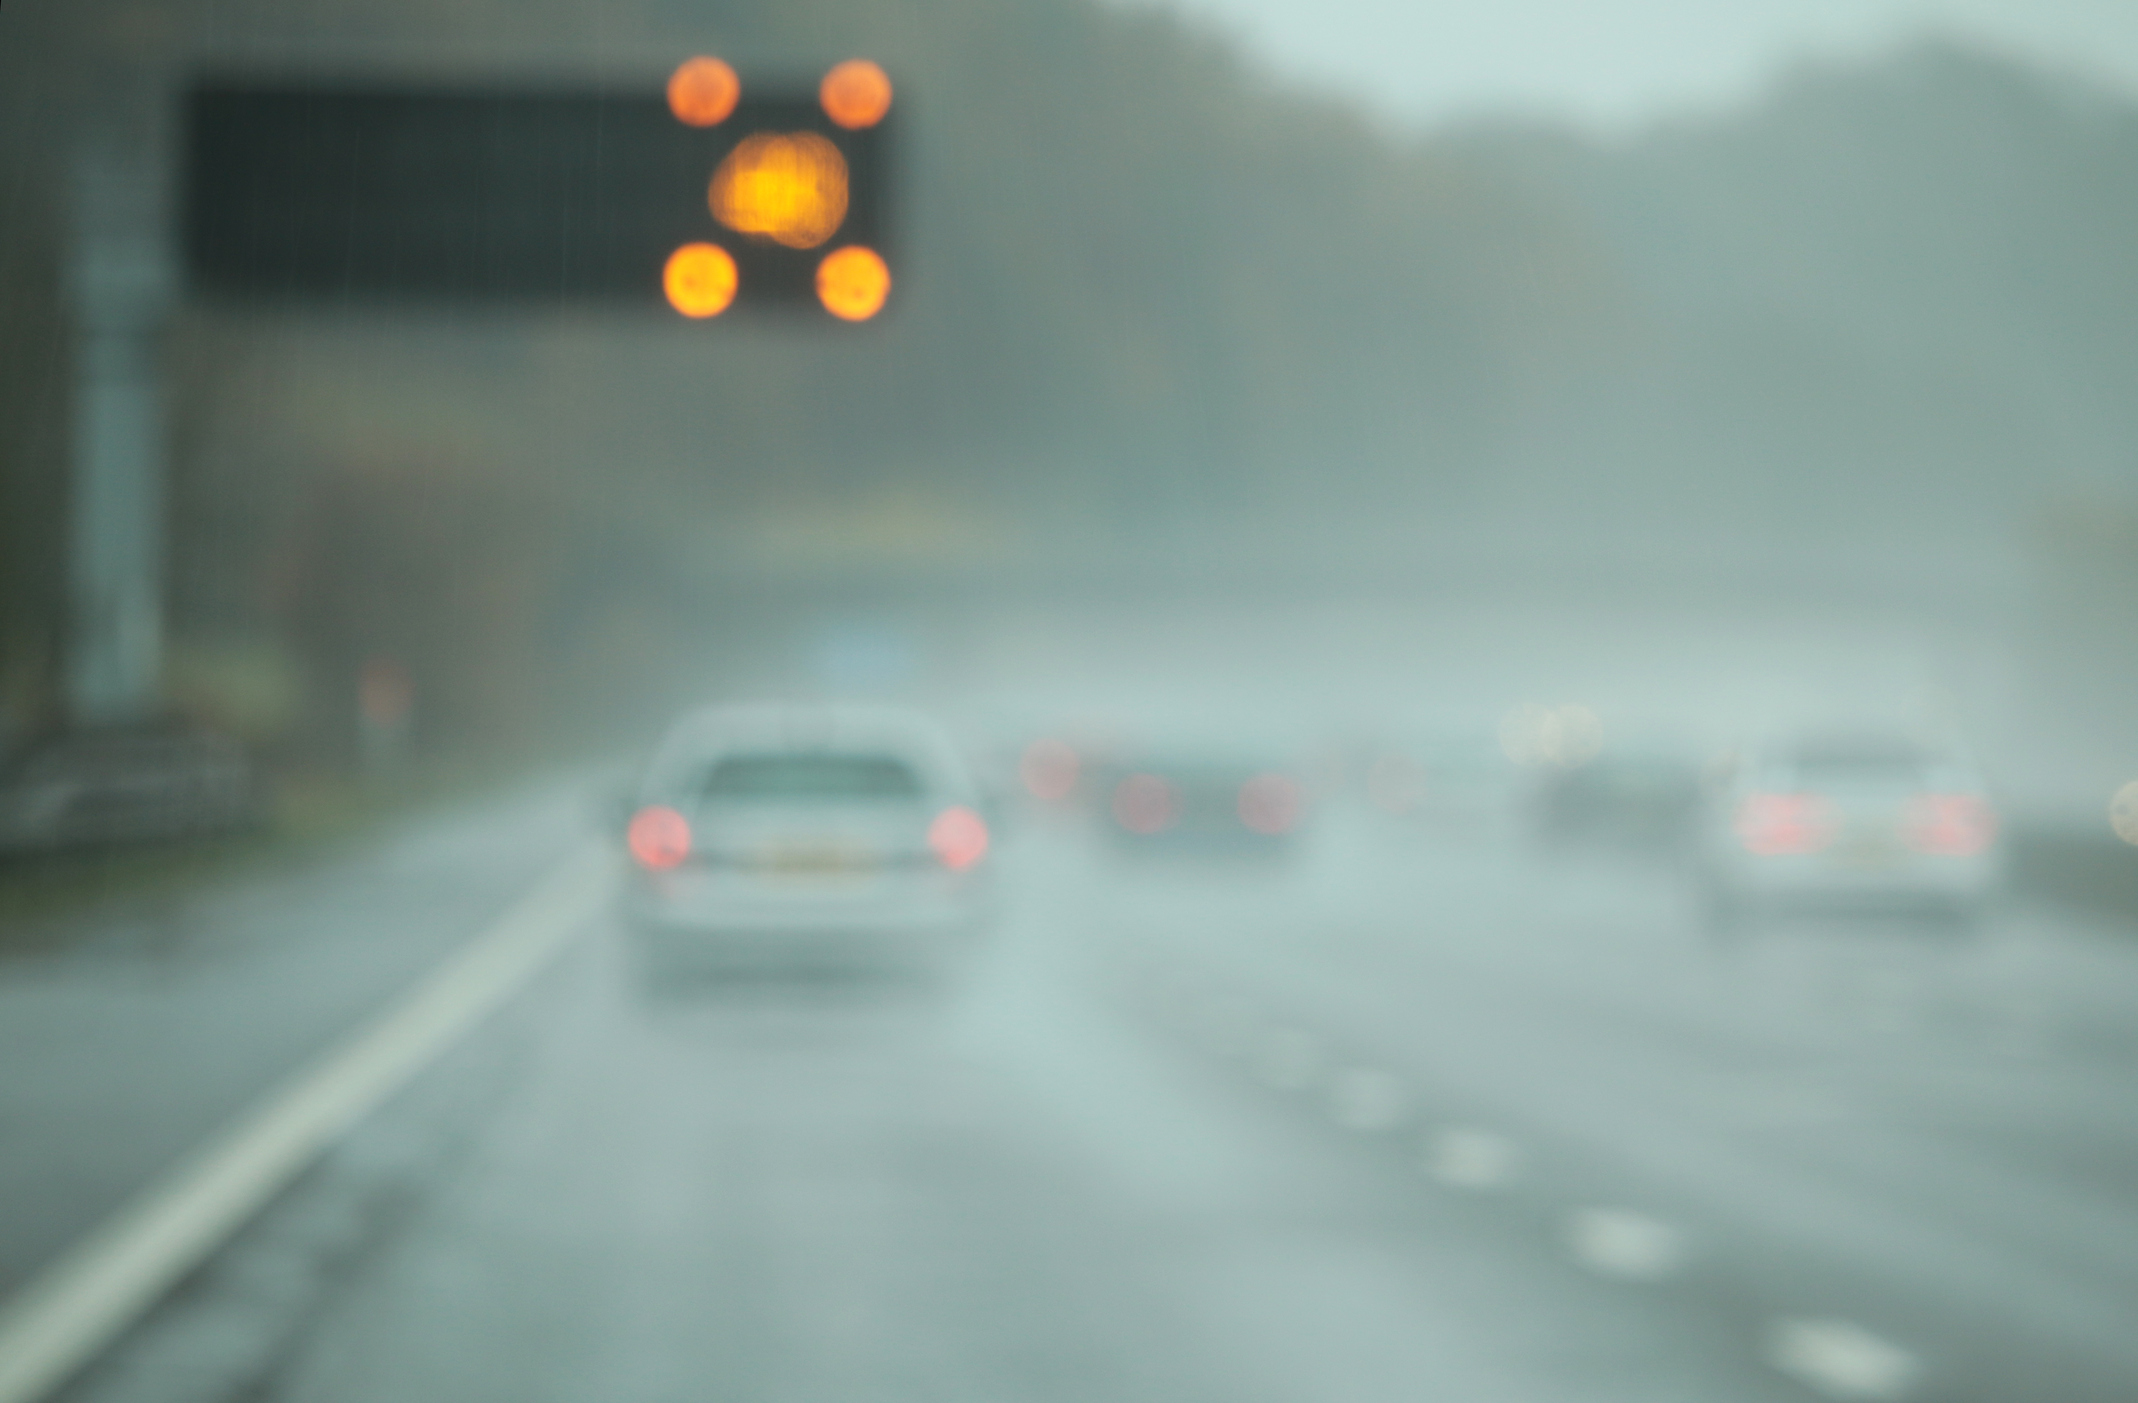 The M6 motorway in England on a wet November day, with speed warning lights flashing overhead. Defocused to highlight poor visibility.